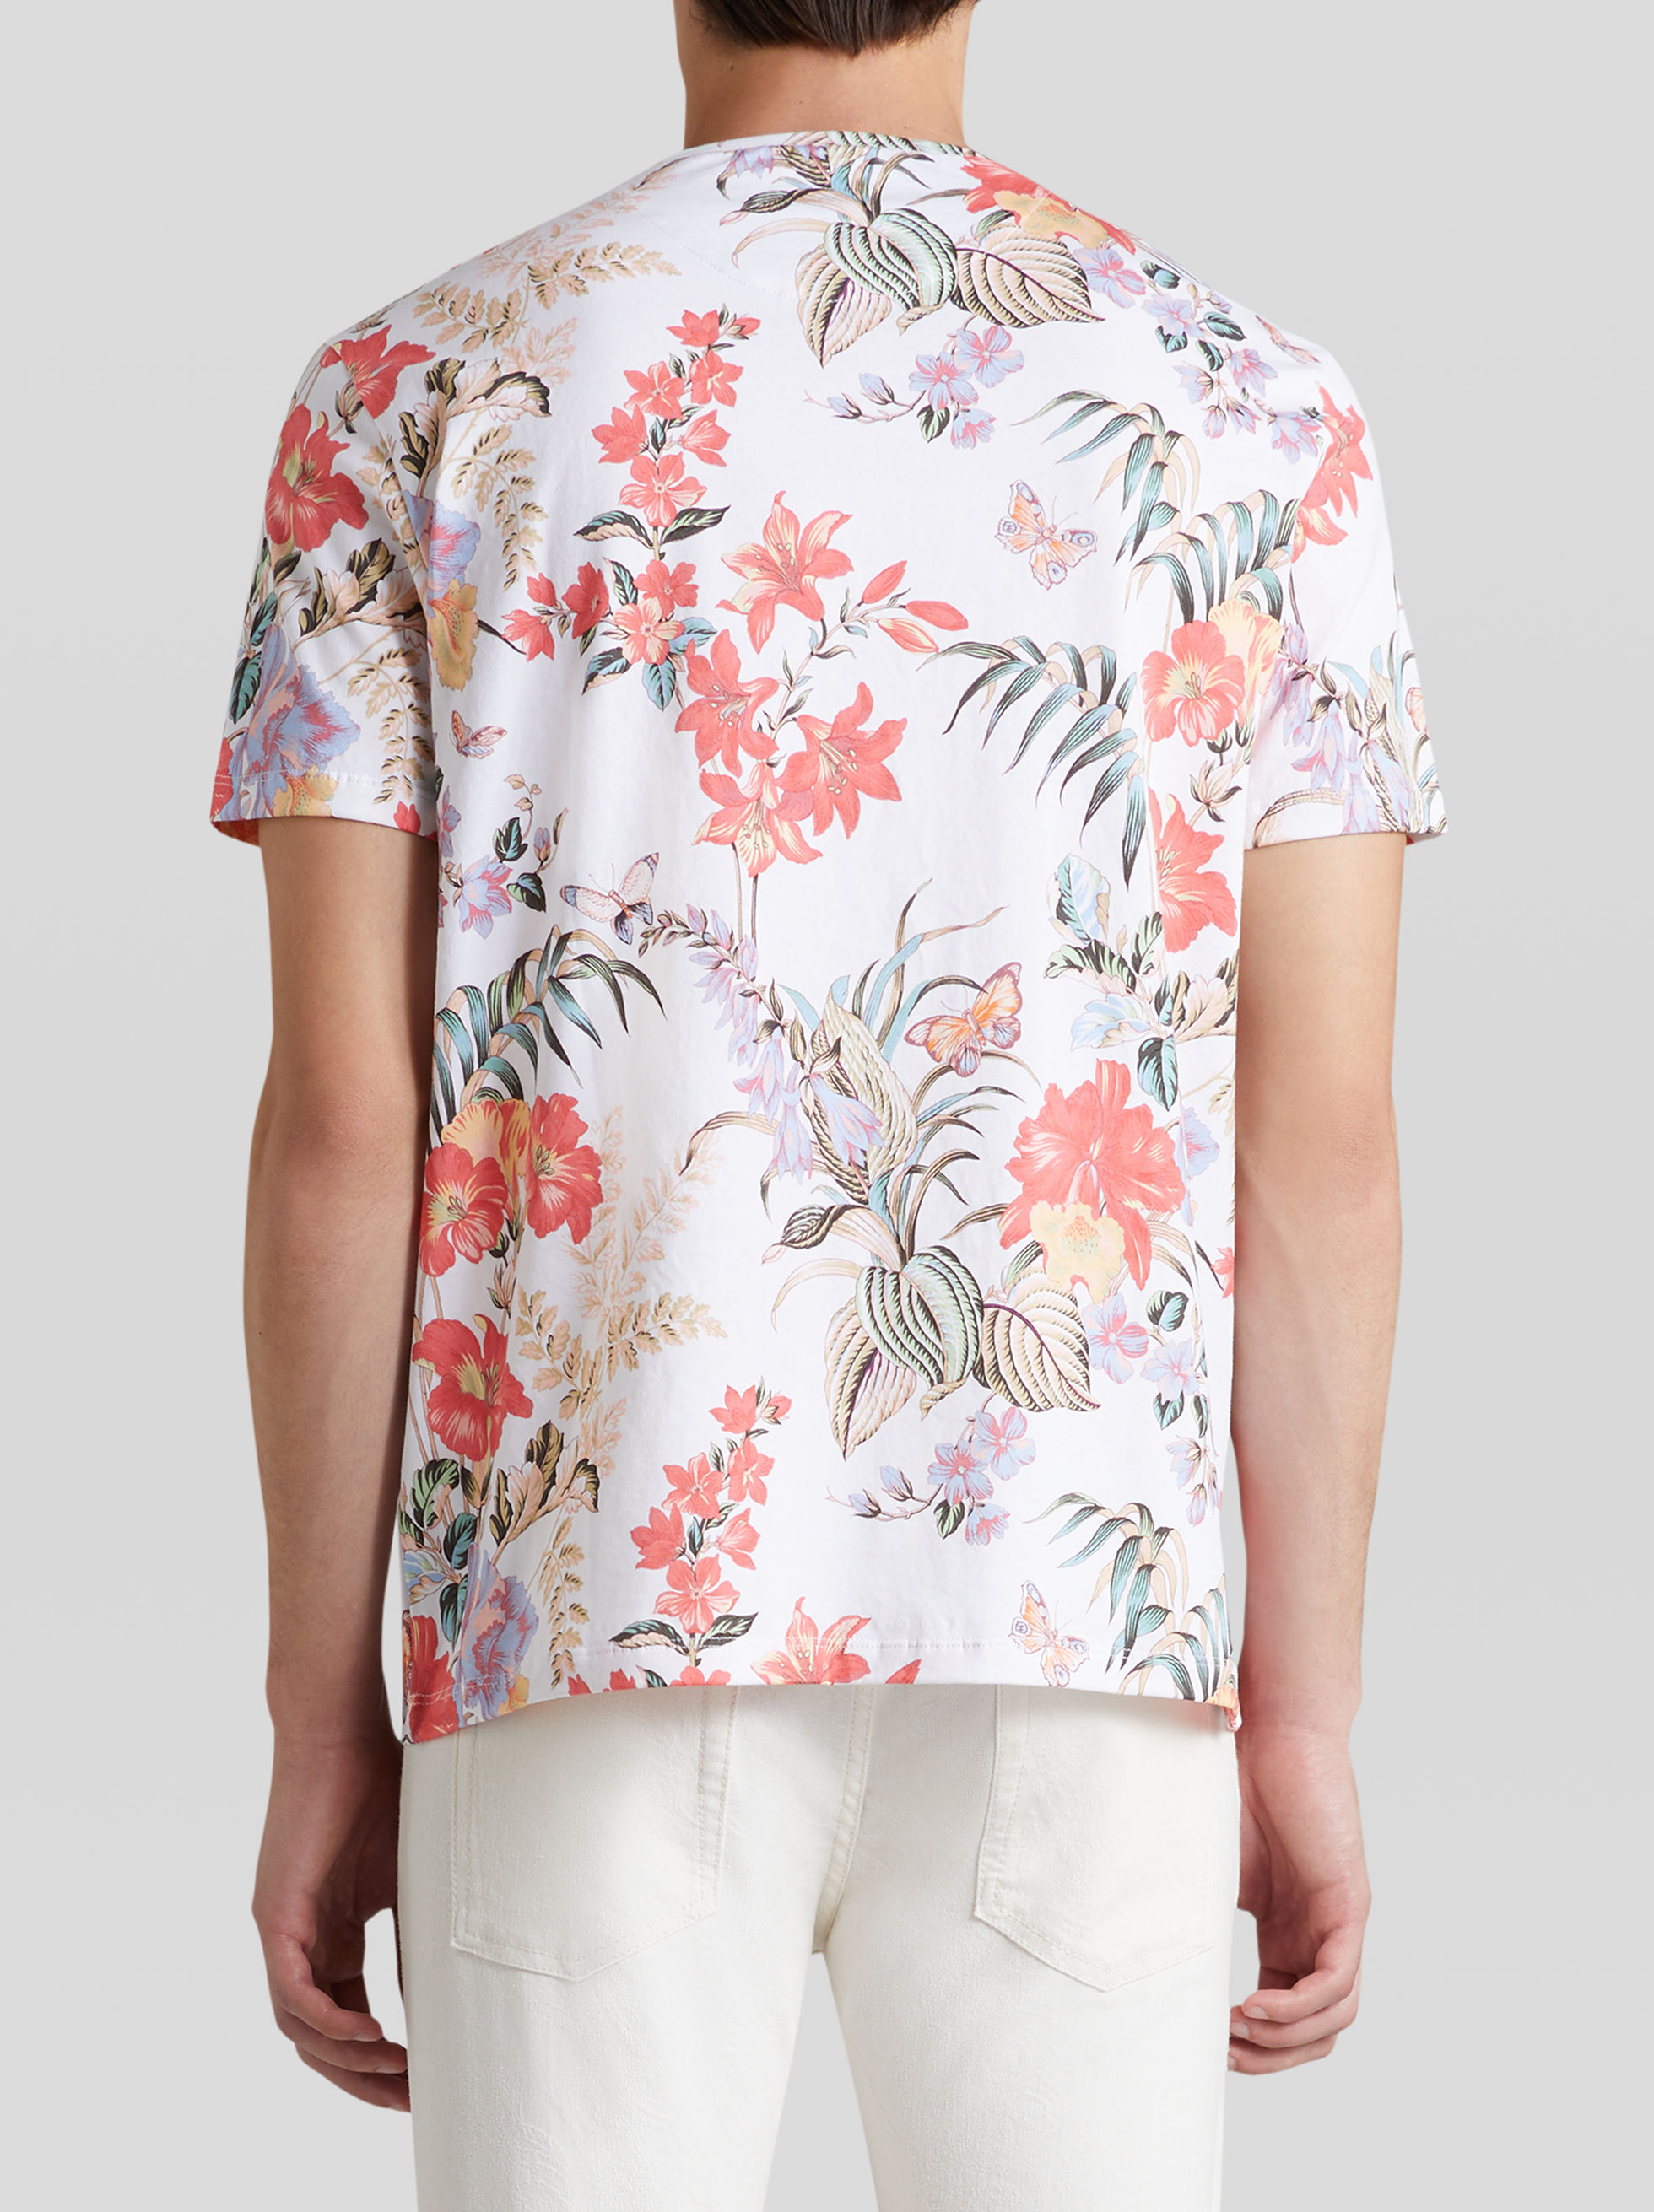 COTTON T-SHIRT WITH FLORAL AND BUTTERFLY PRINT